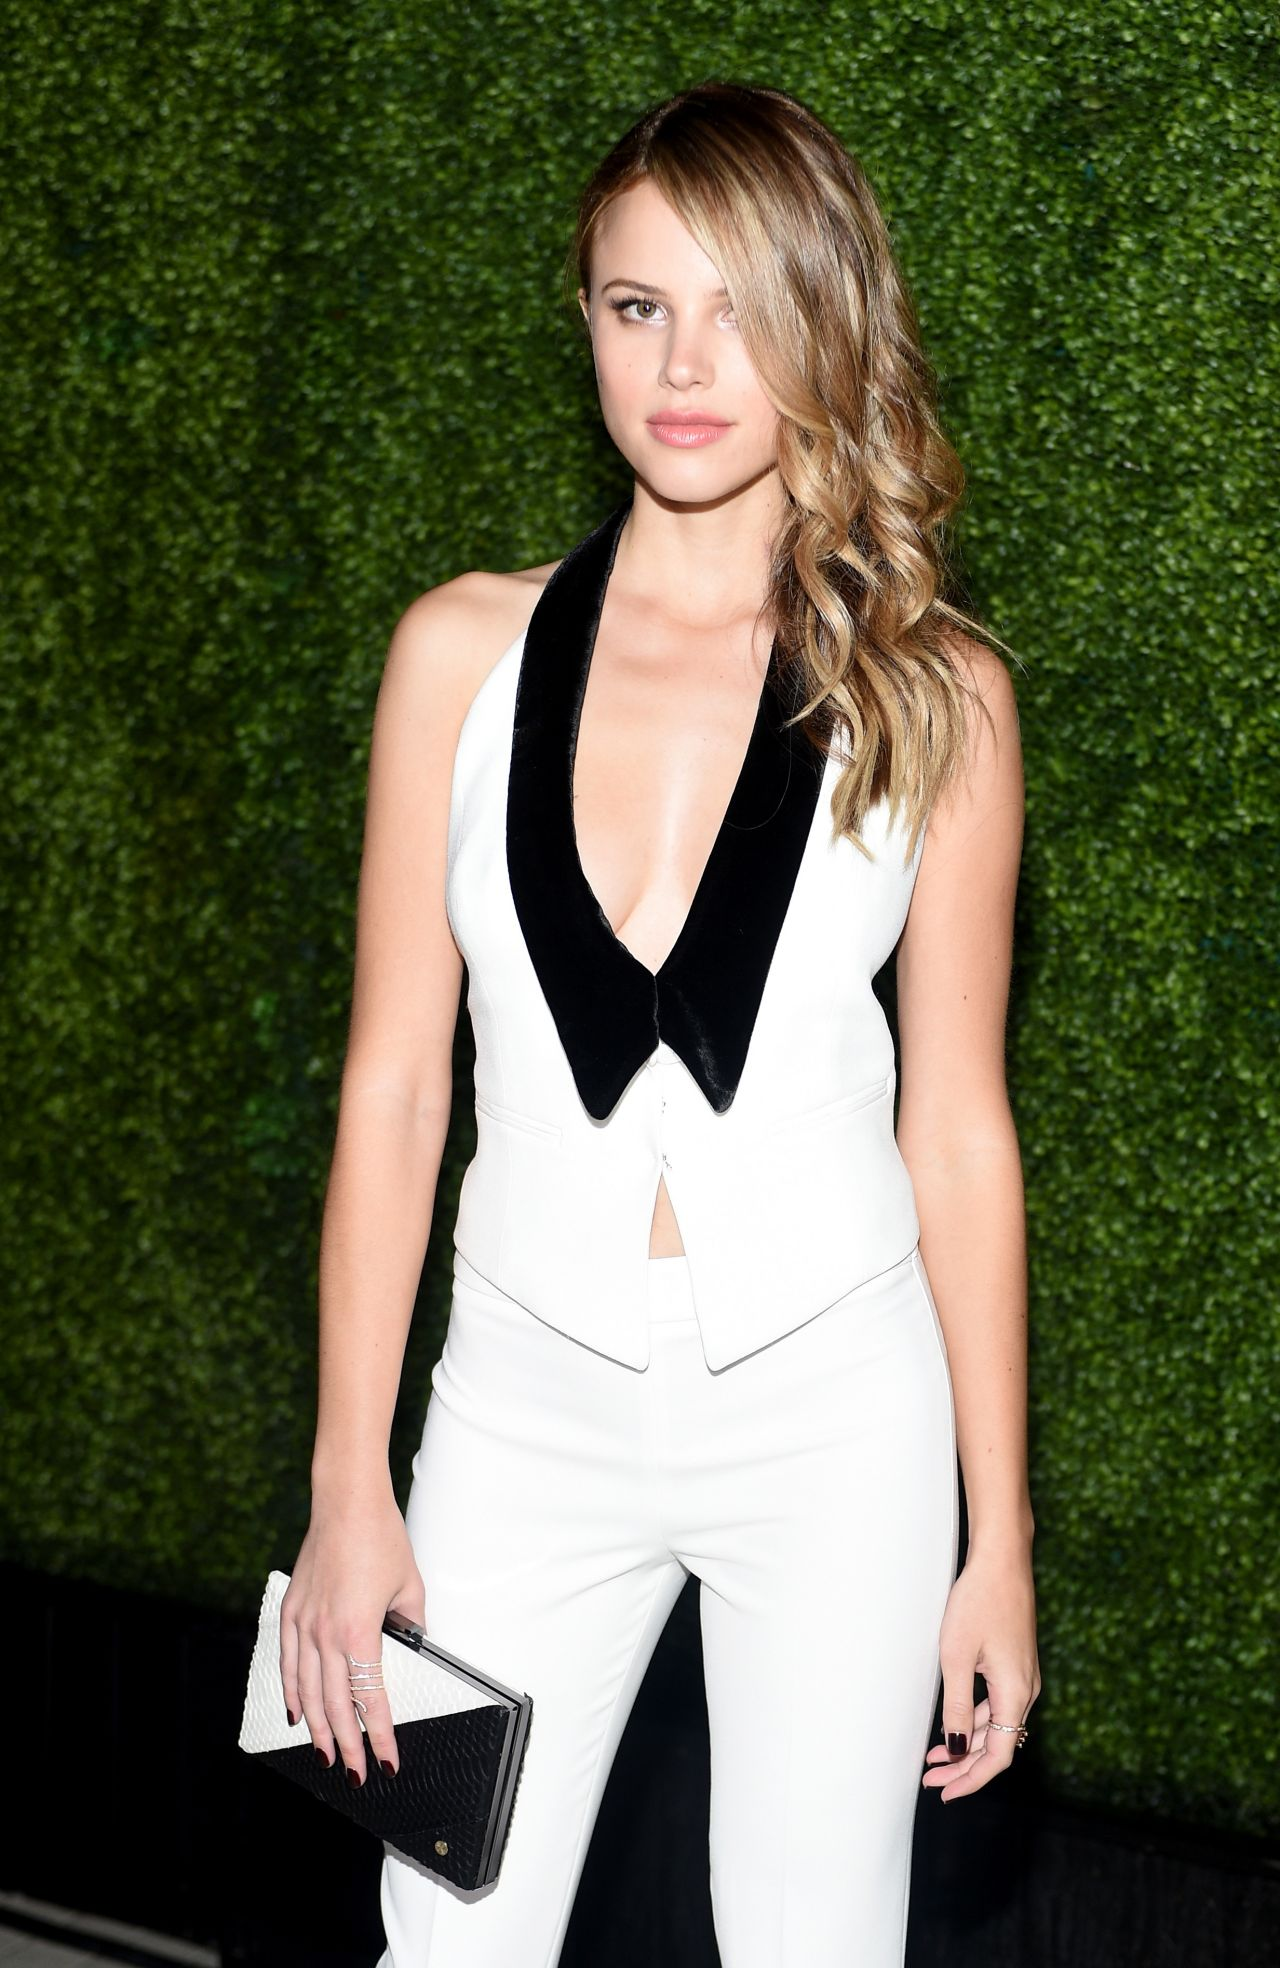 Halston Sage 2015 Teen Vogue Young Hollywood Issue